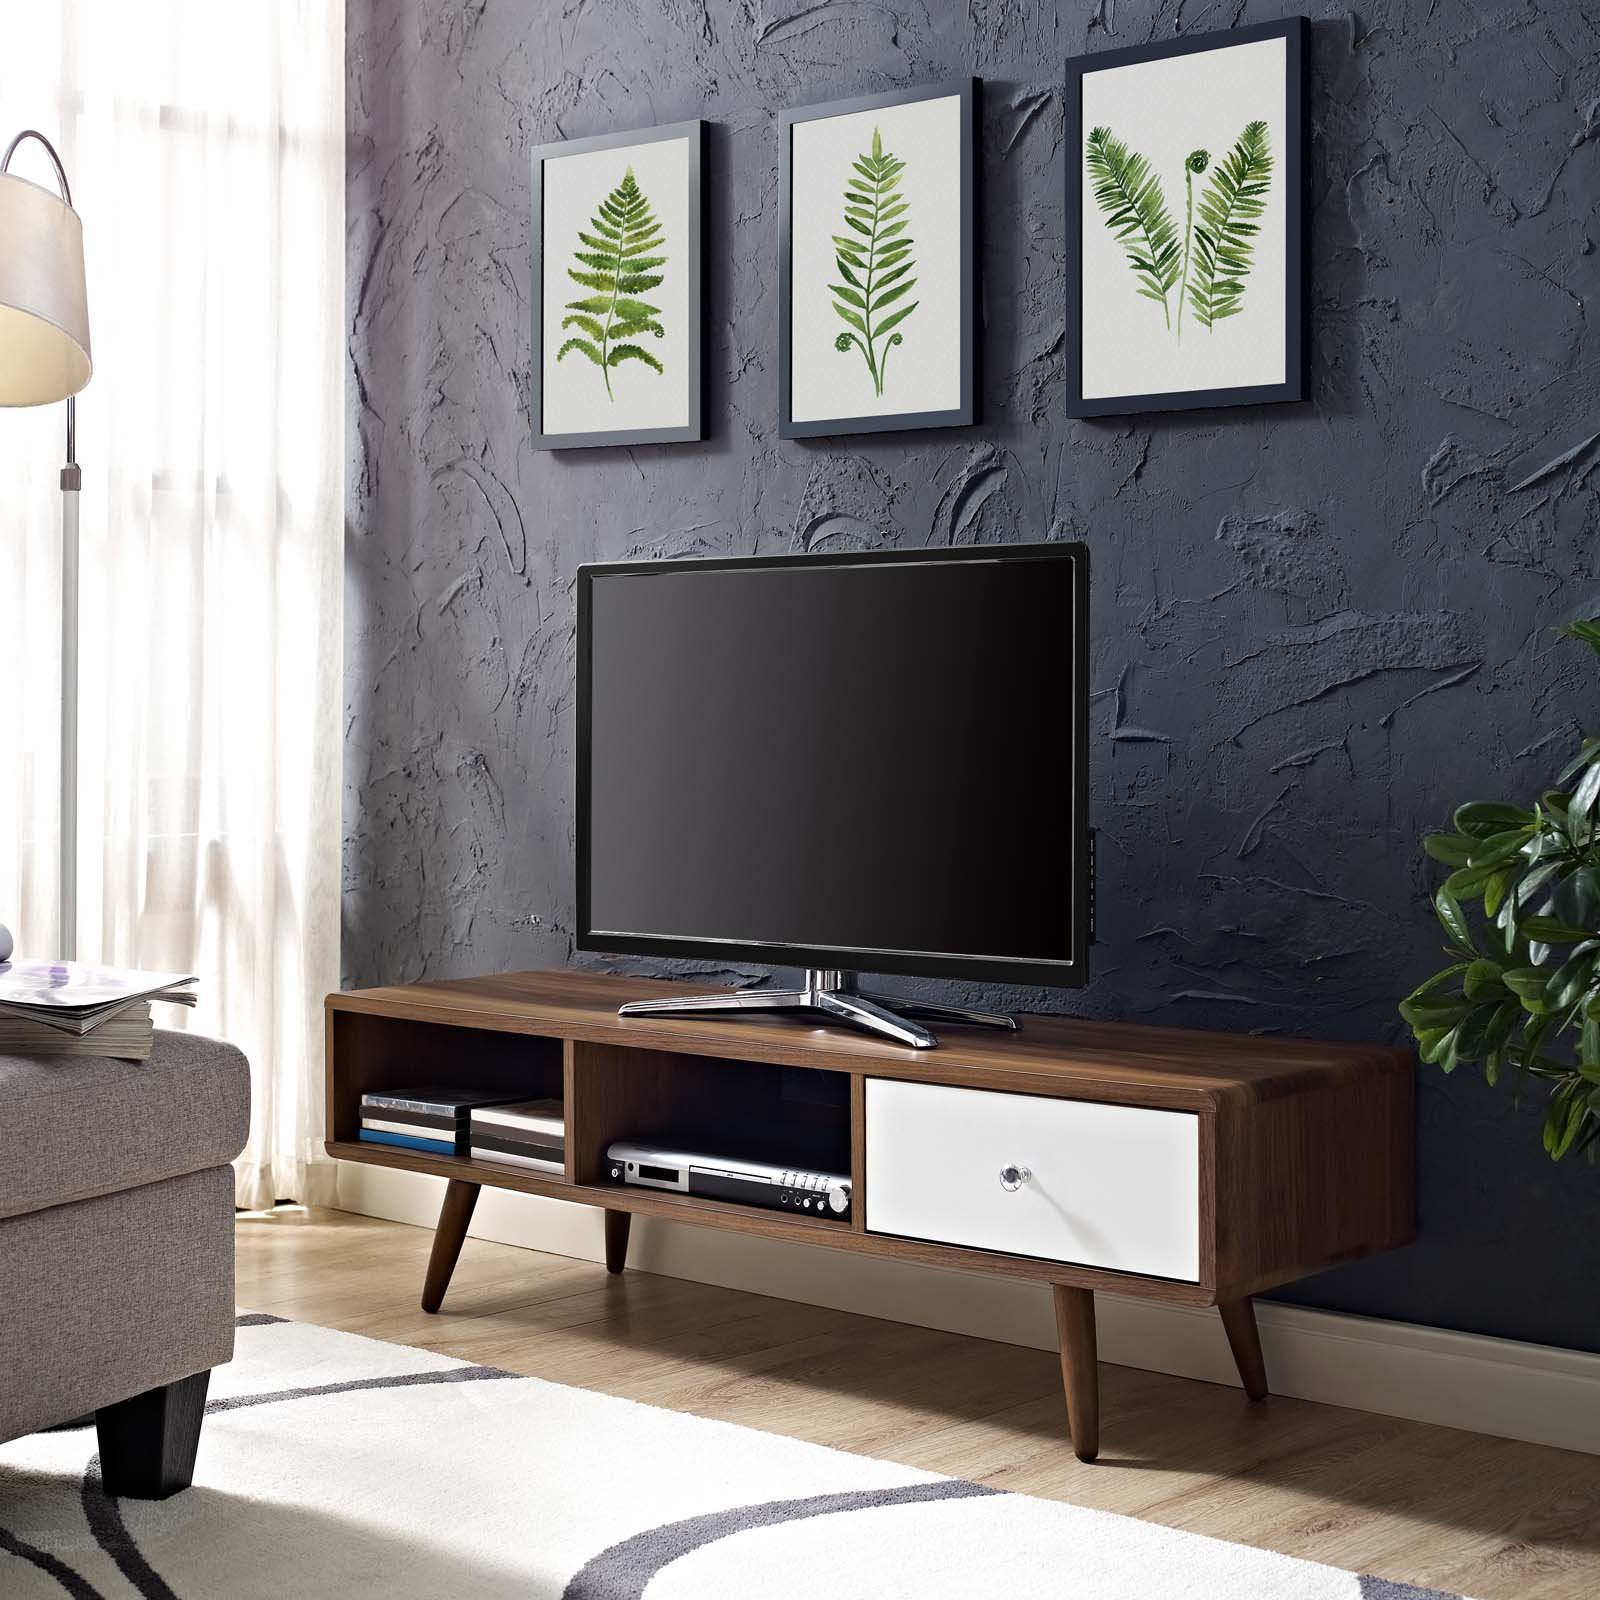 Modway Transmit Mid-Century Modern Low Profile 55 Inch TV Stand in Walnut by Modway